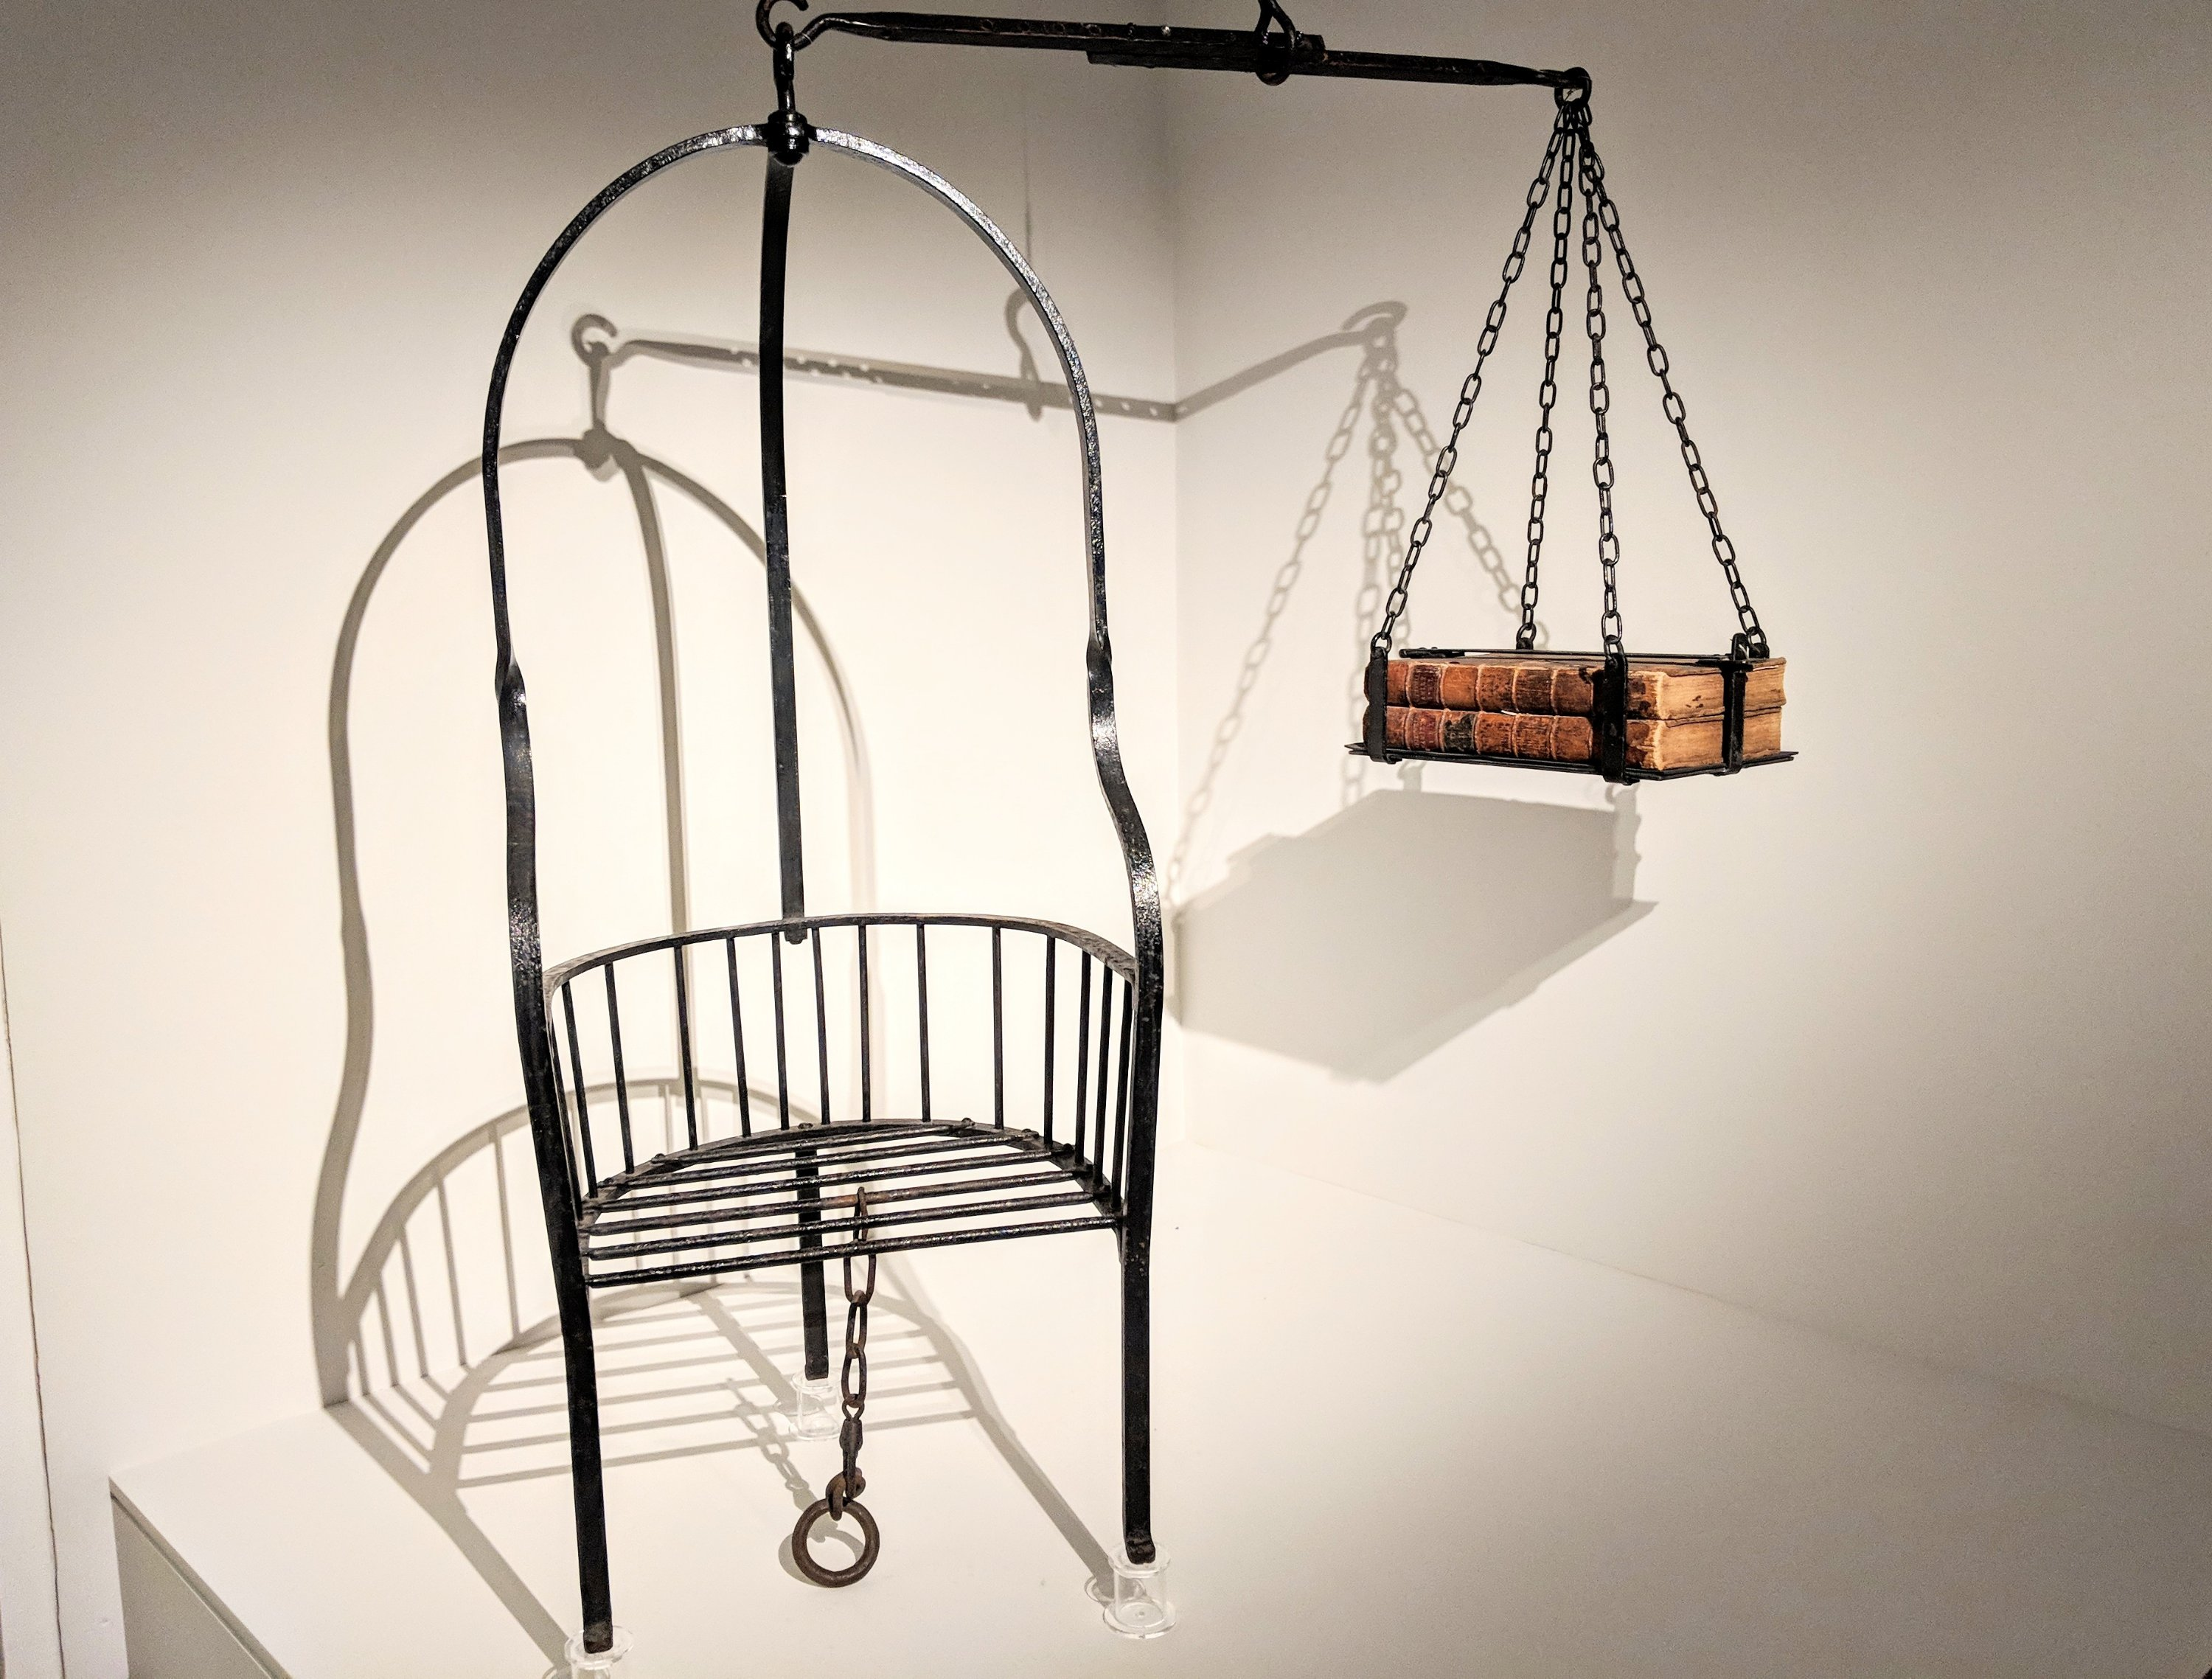 Witch weighing scales on exhibition at the Ashmolean in Oxford, UK.